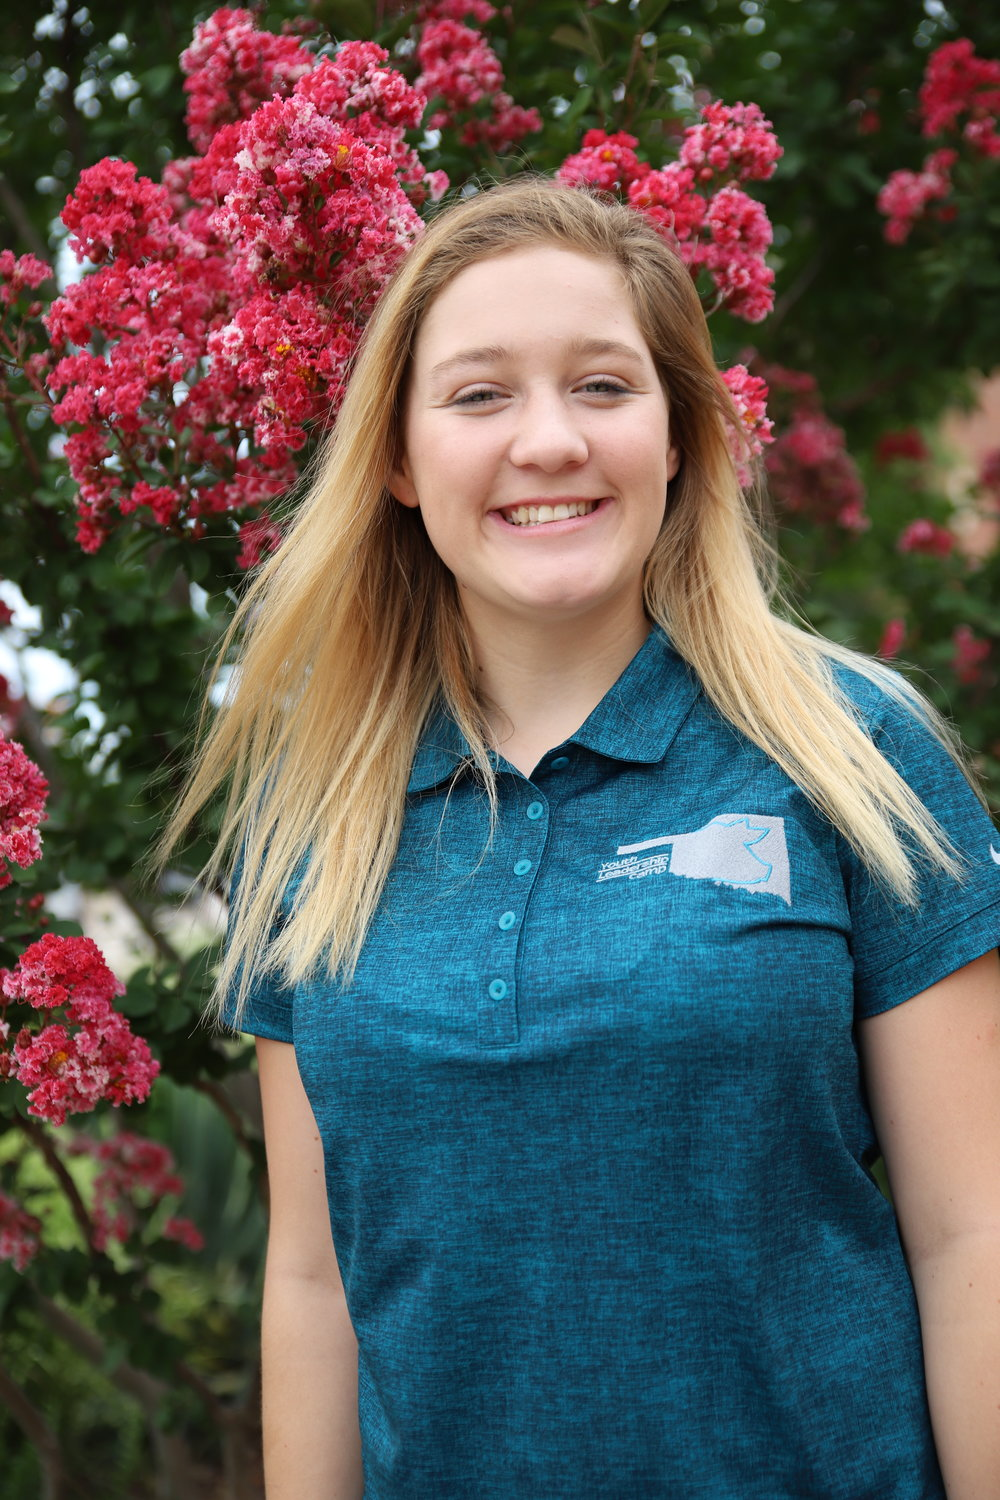 """My favorite part about camp was going to OSU and being able to learn the process of harvesting pigs and then being able to compare that same process to what is done at the Seaboard plant,"" said Brooklyn Barnes, Sand Springs, Okla."